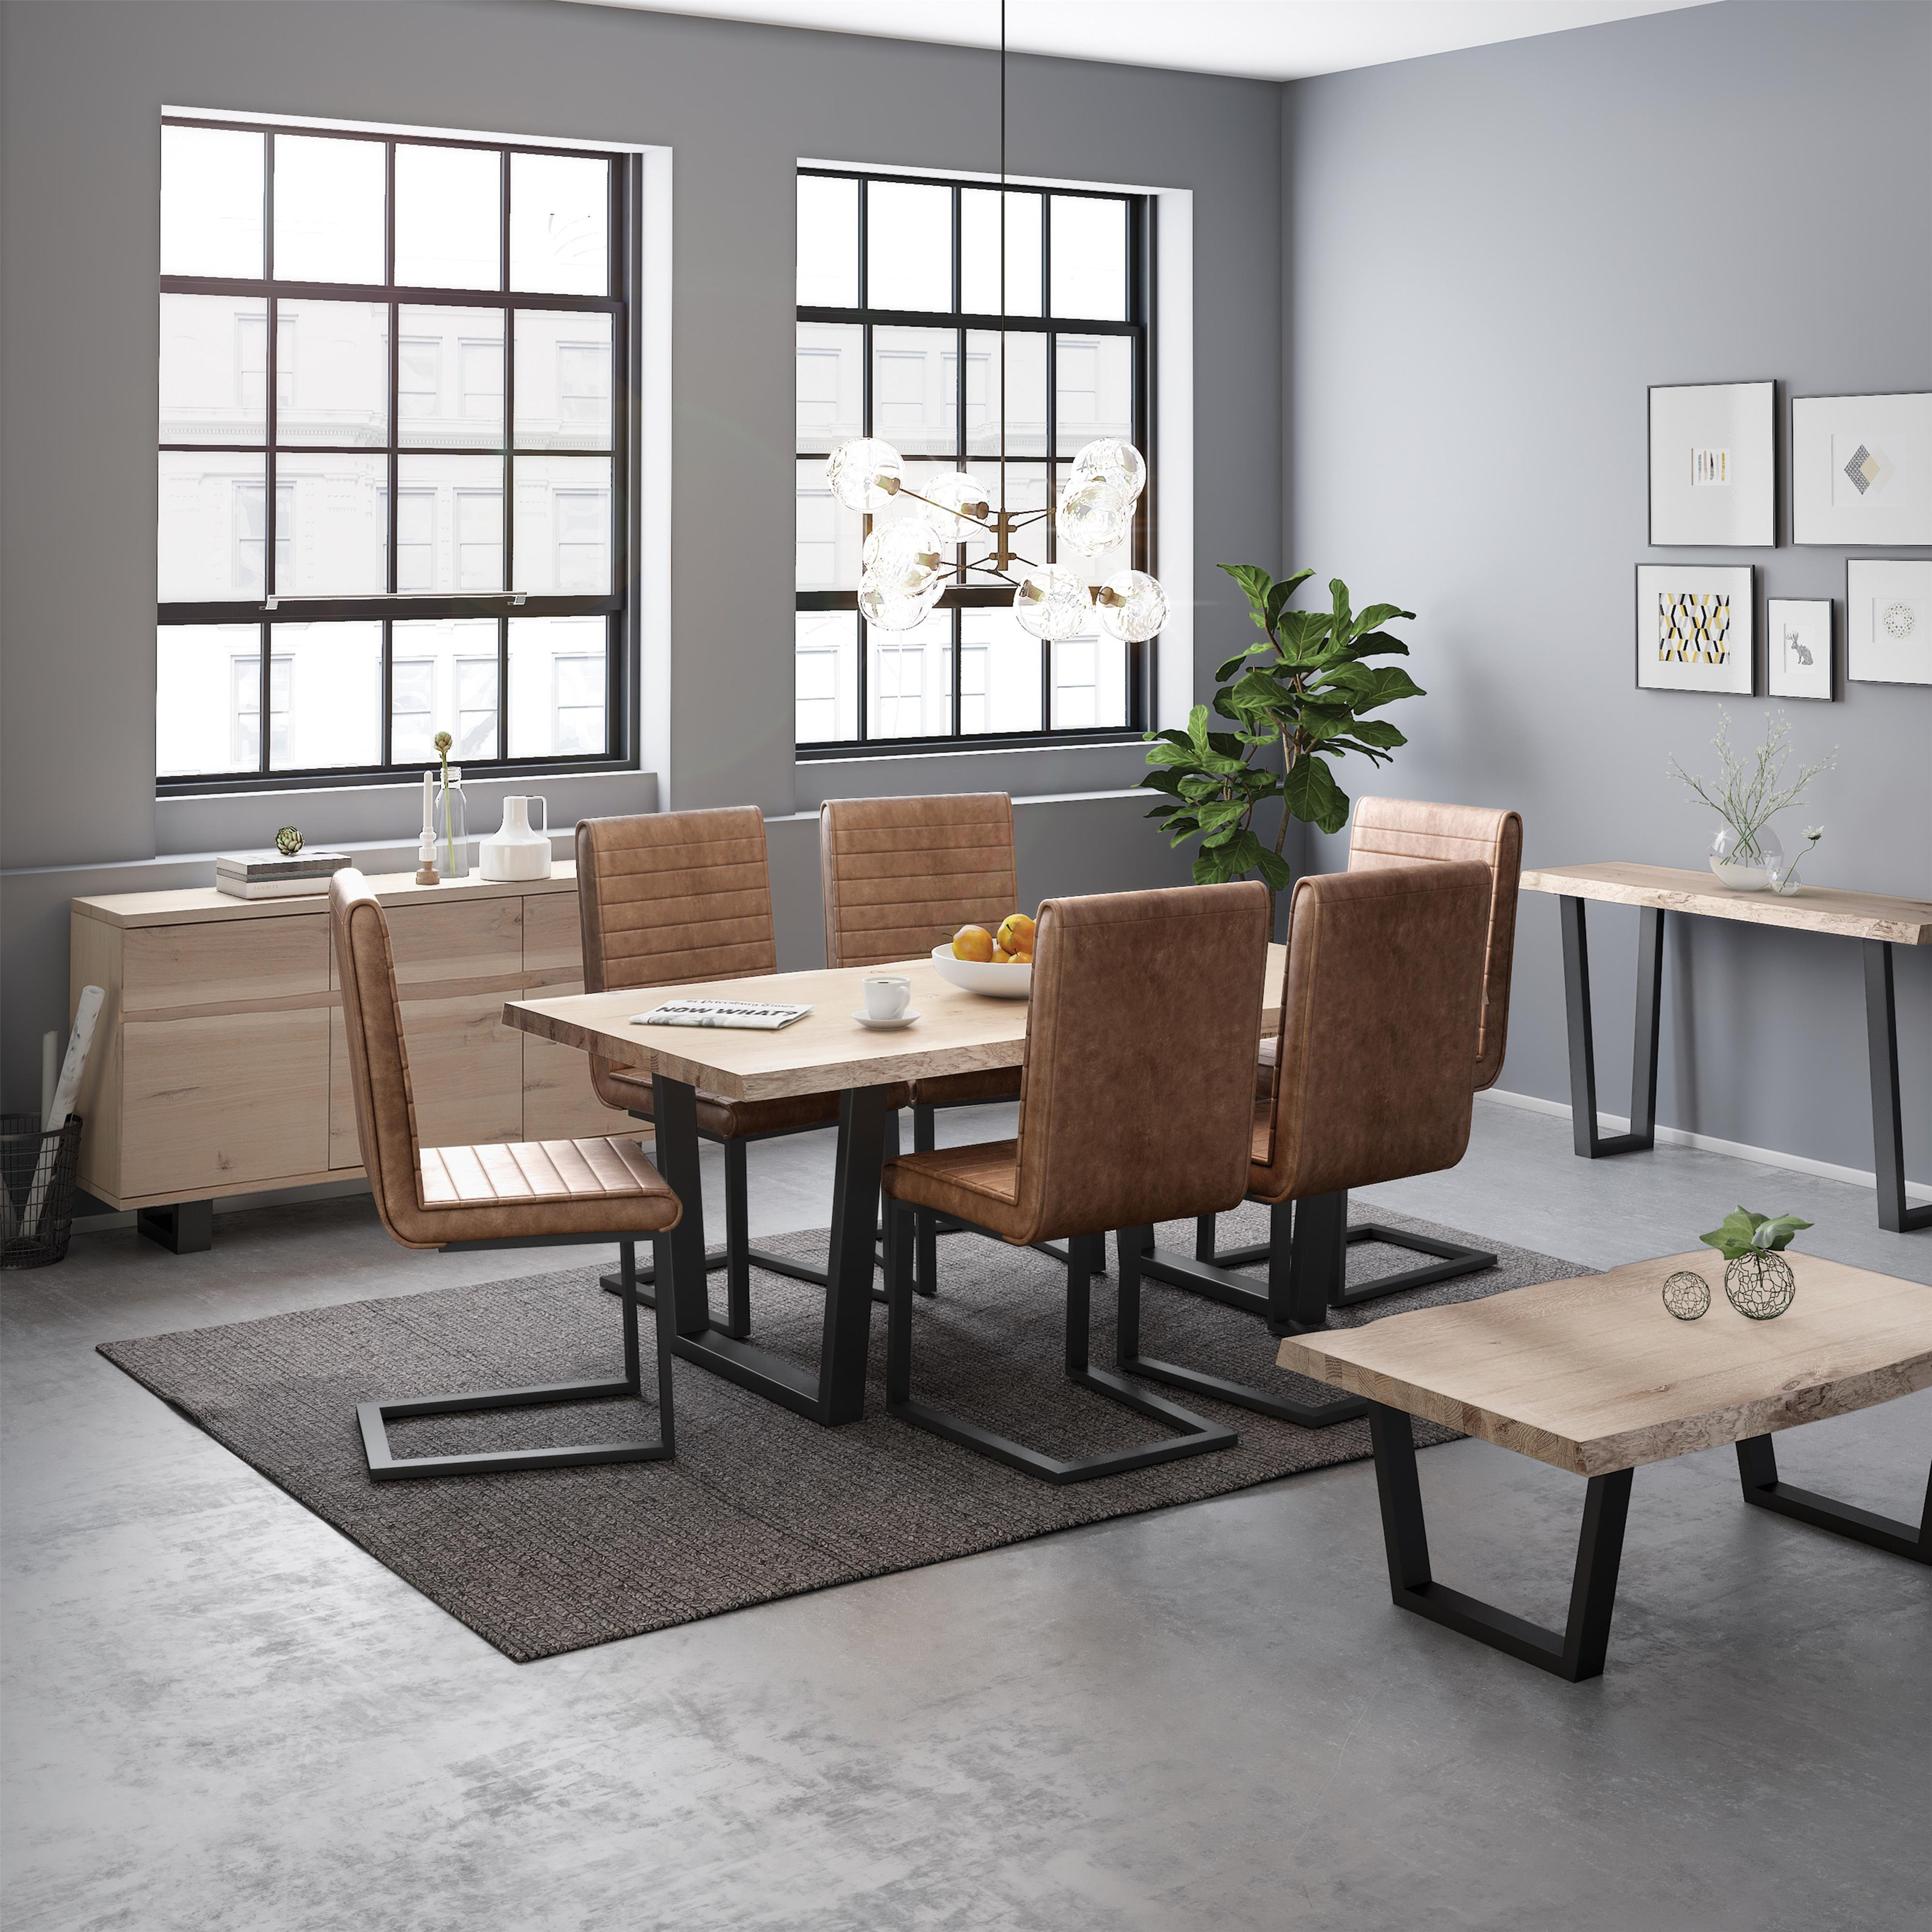 Oak Mill 5 Piece Dining Package by Global Home at Red Knot